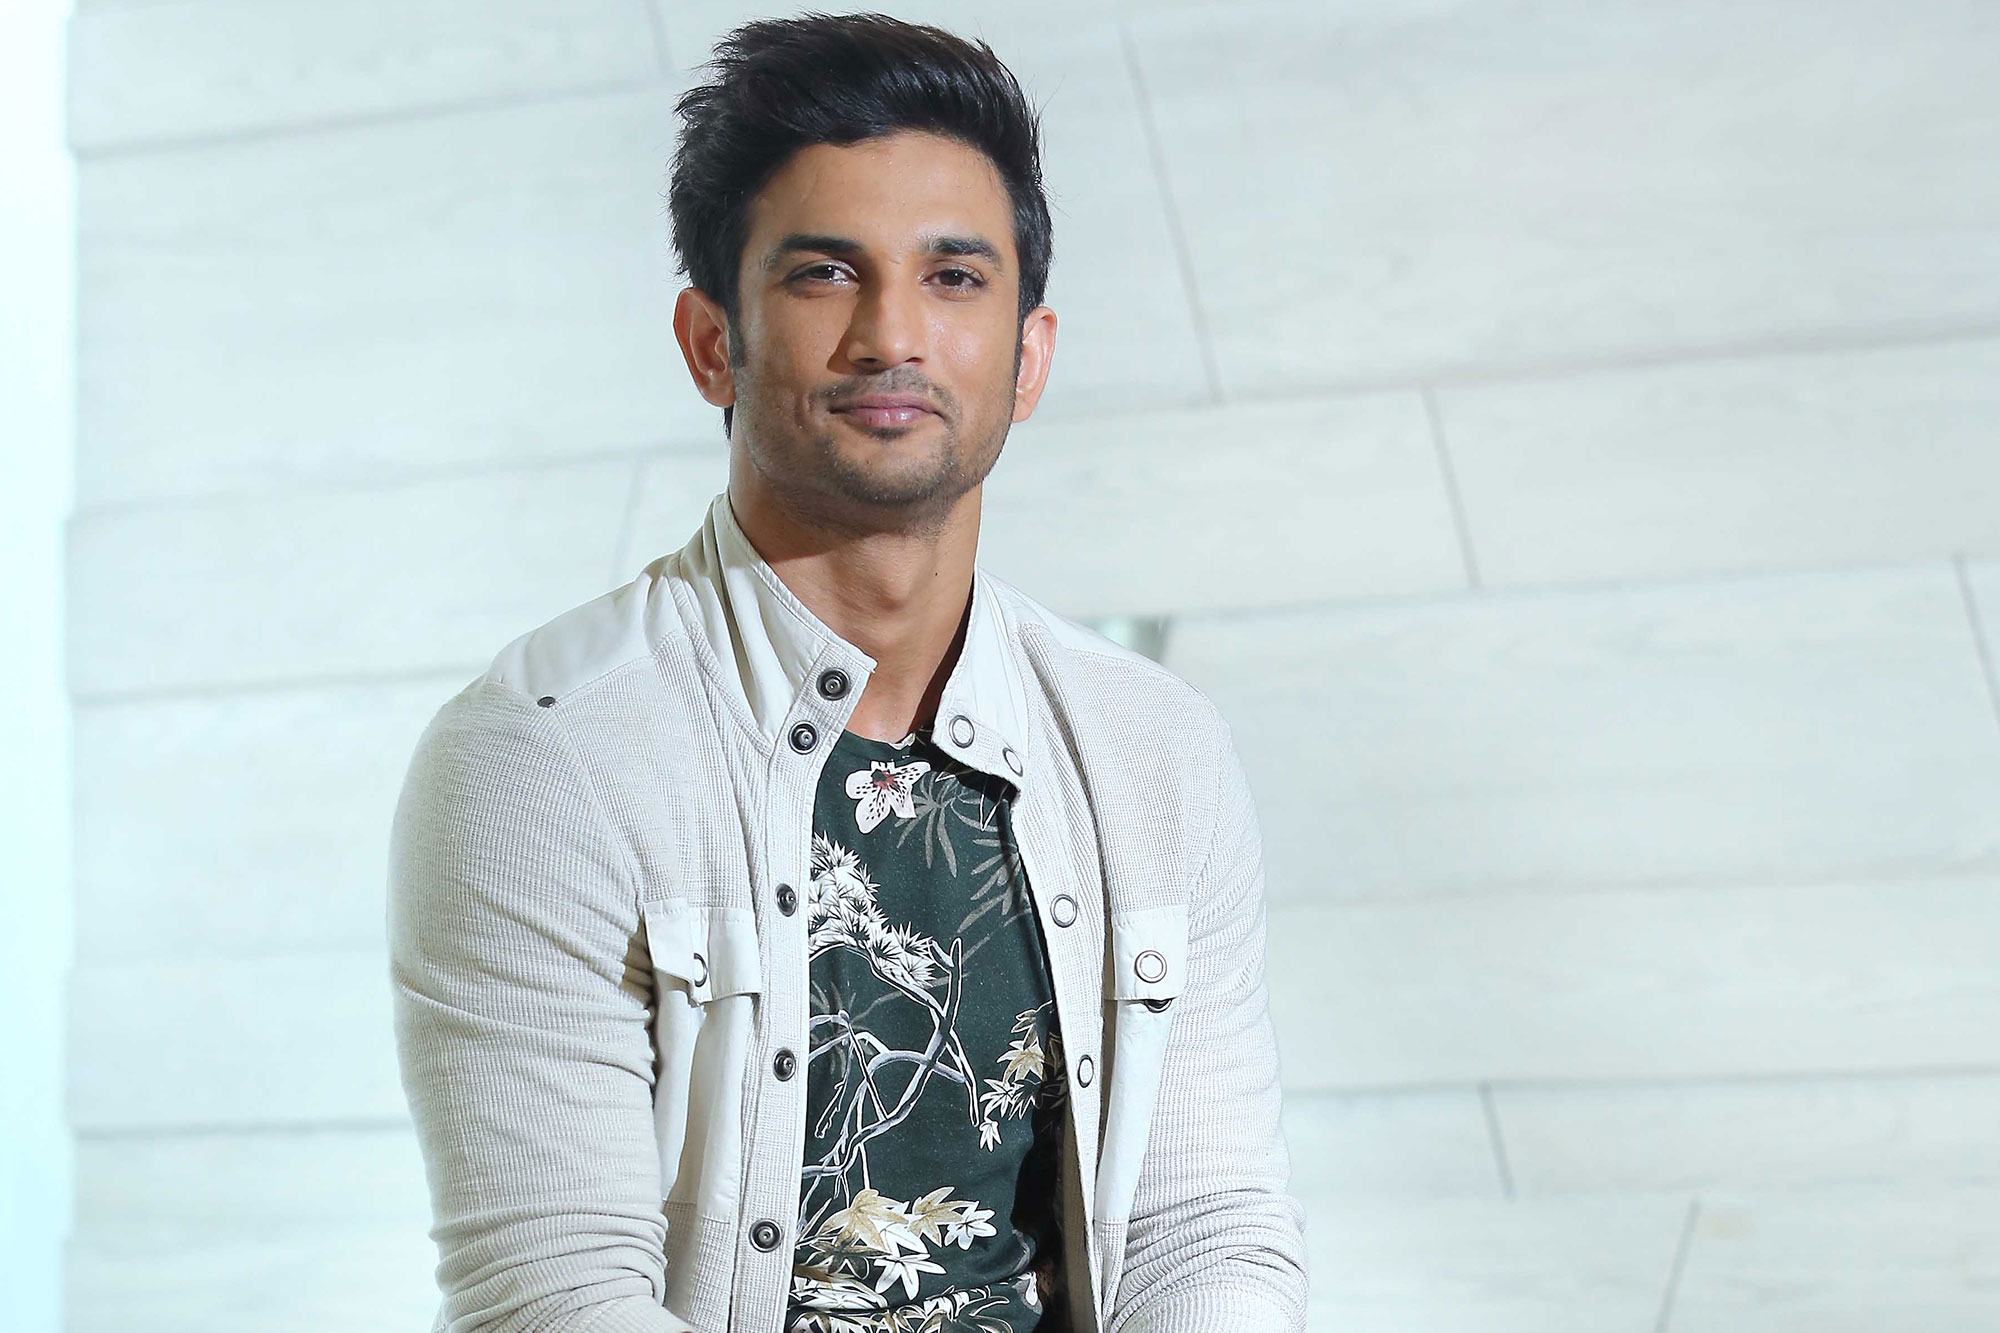 Sushant Singh Rajput, Bollywood star and TV actor, dies at 34 | EW.com